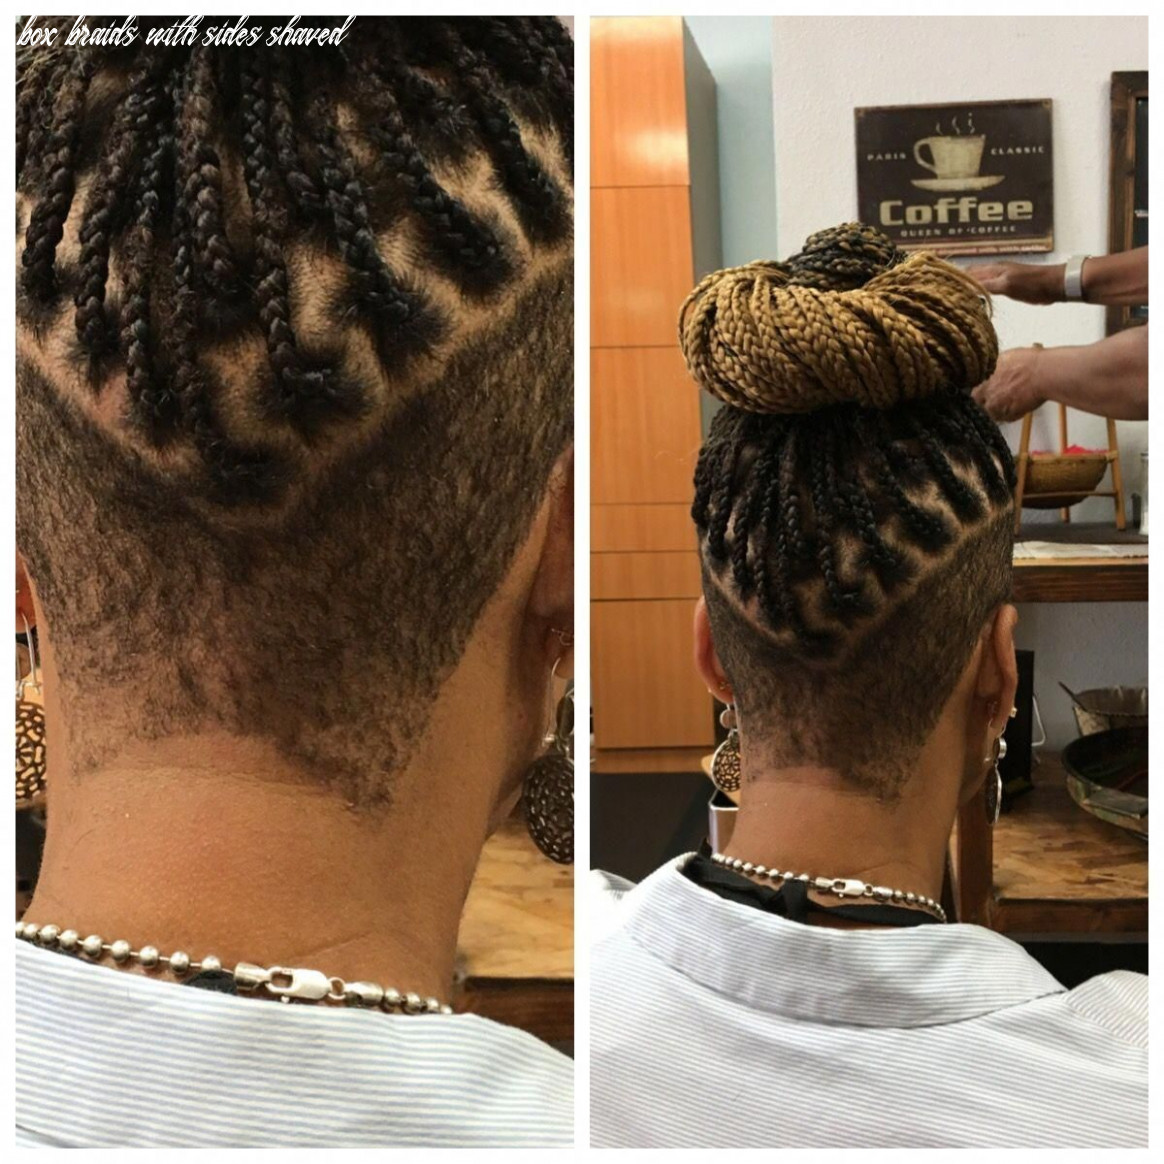 Pin by Tip12 on Braids with shaved sides in 12 | Braids with ...